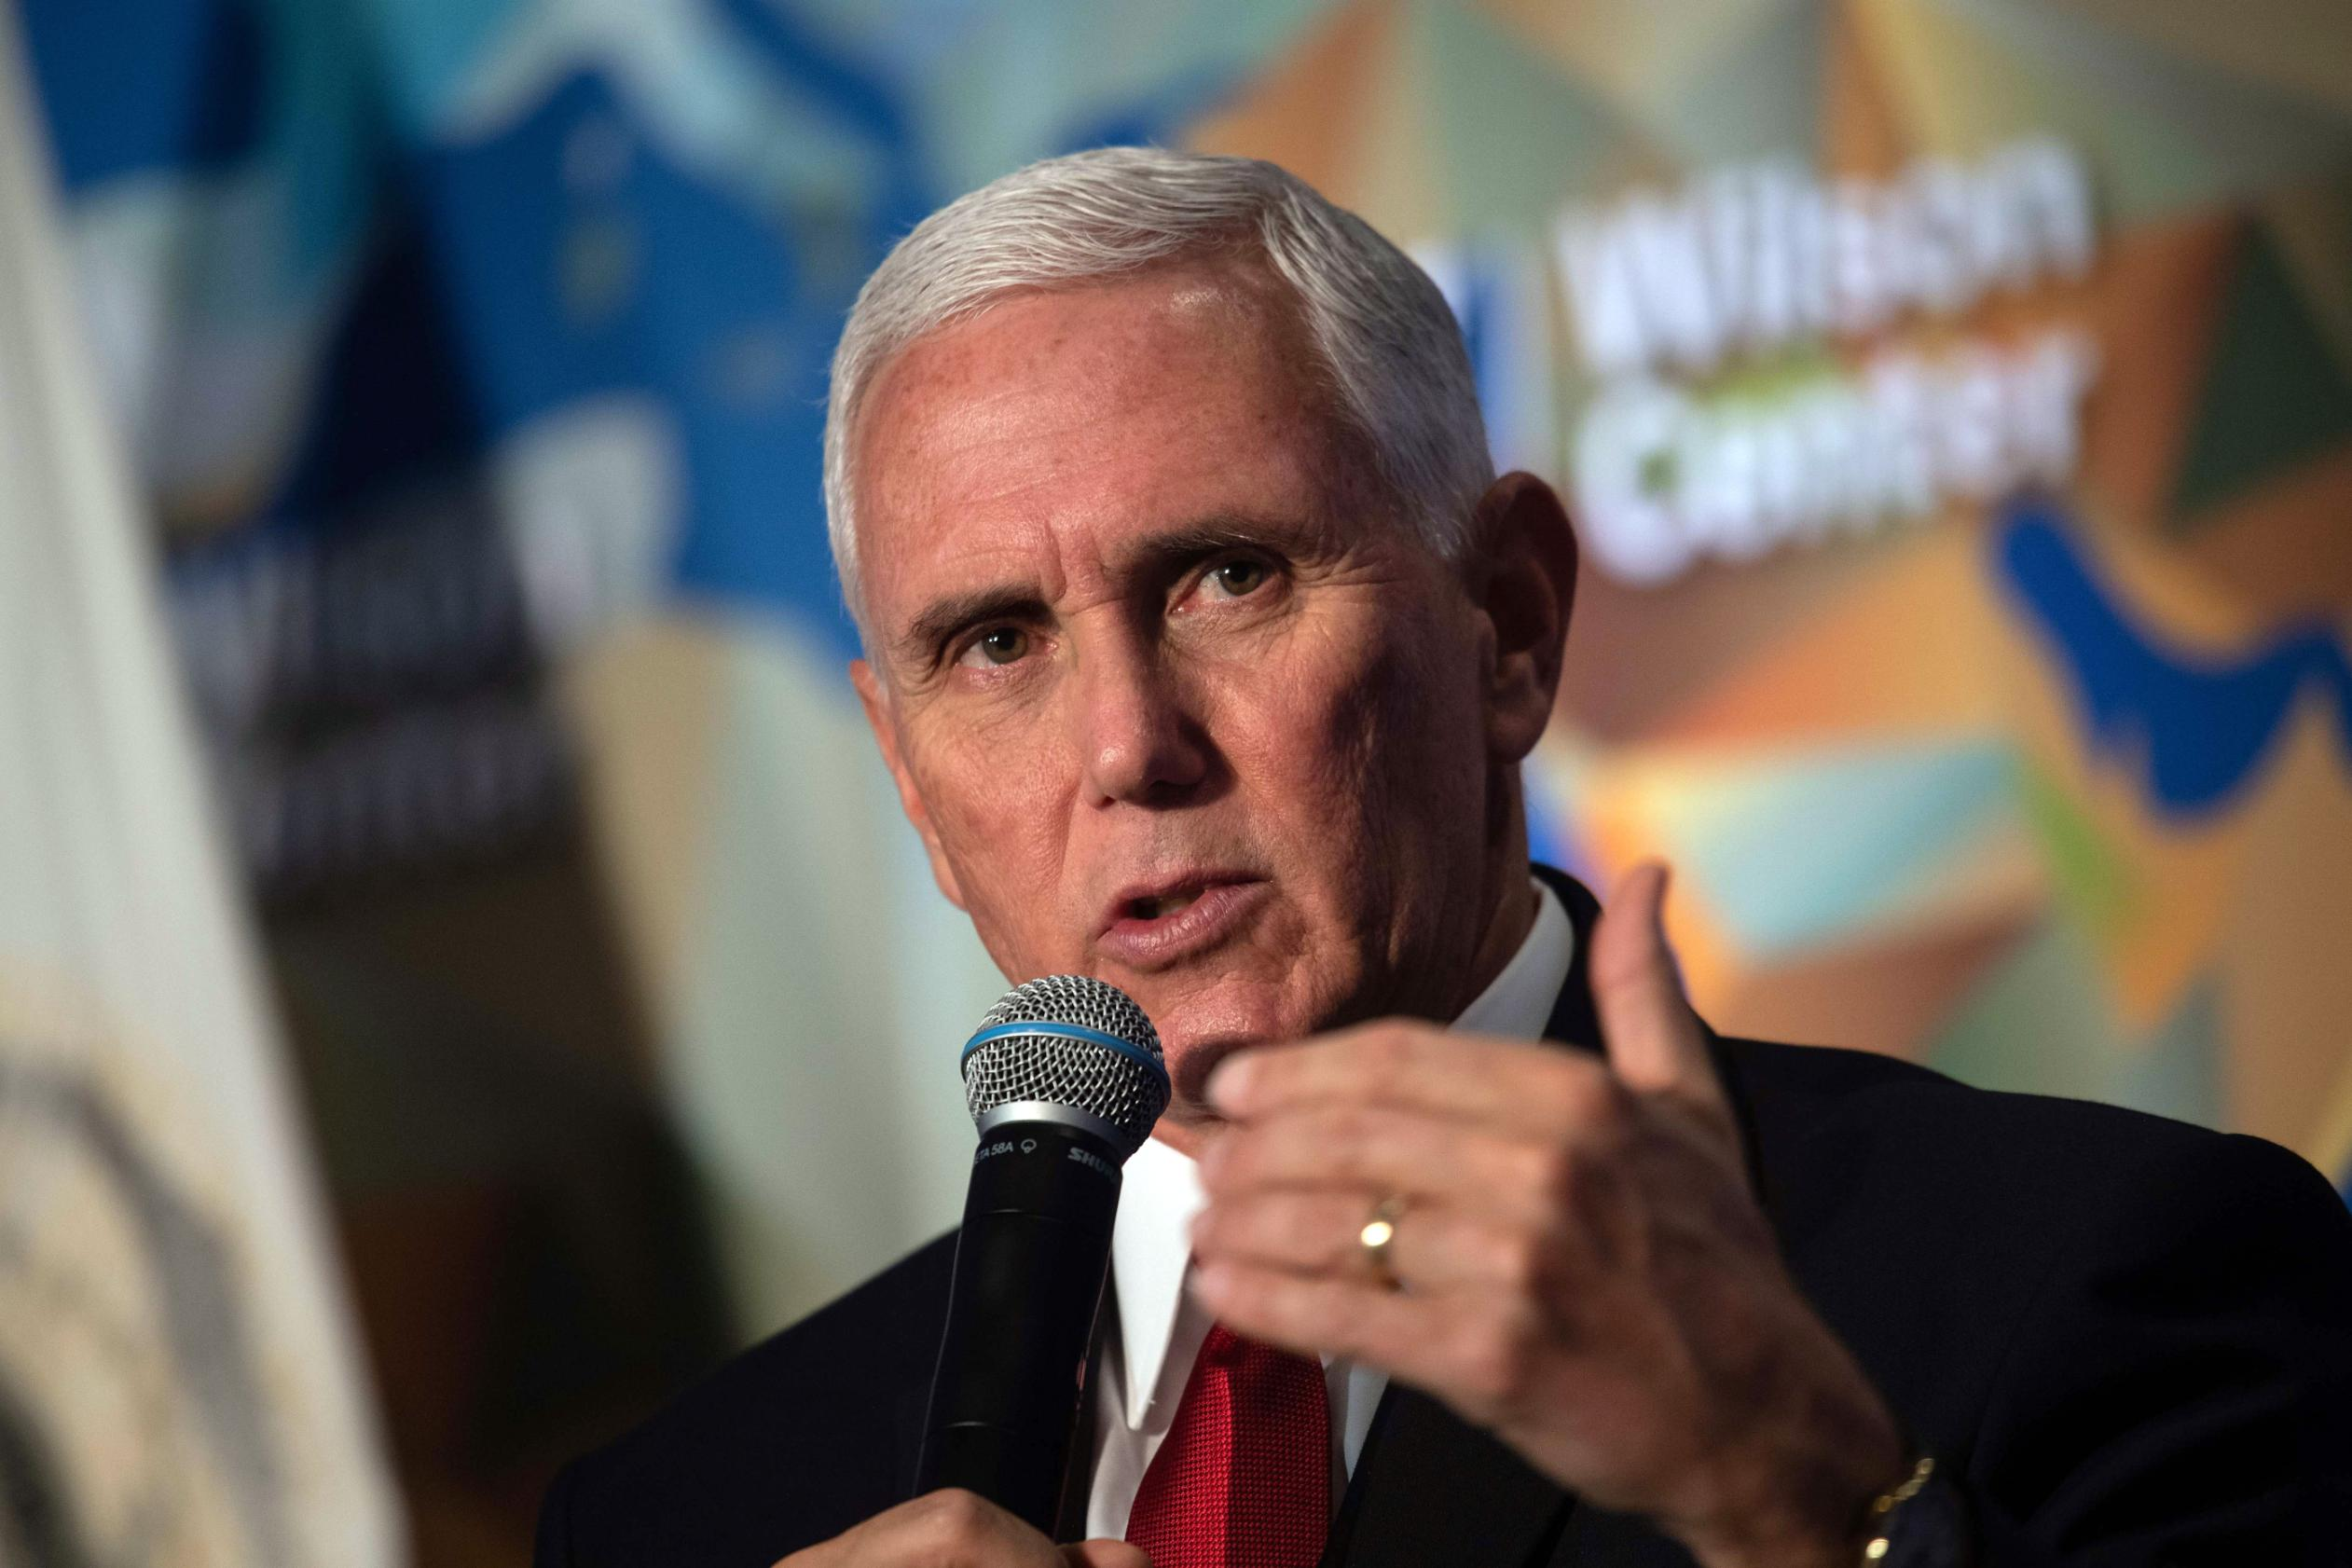 Pence is leading the coronavirus response but he's still heading to Florida to fundraise